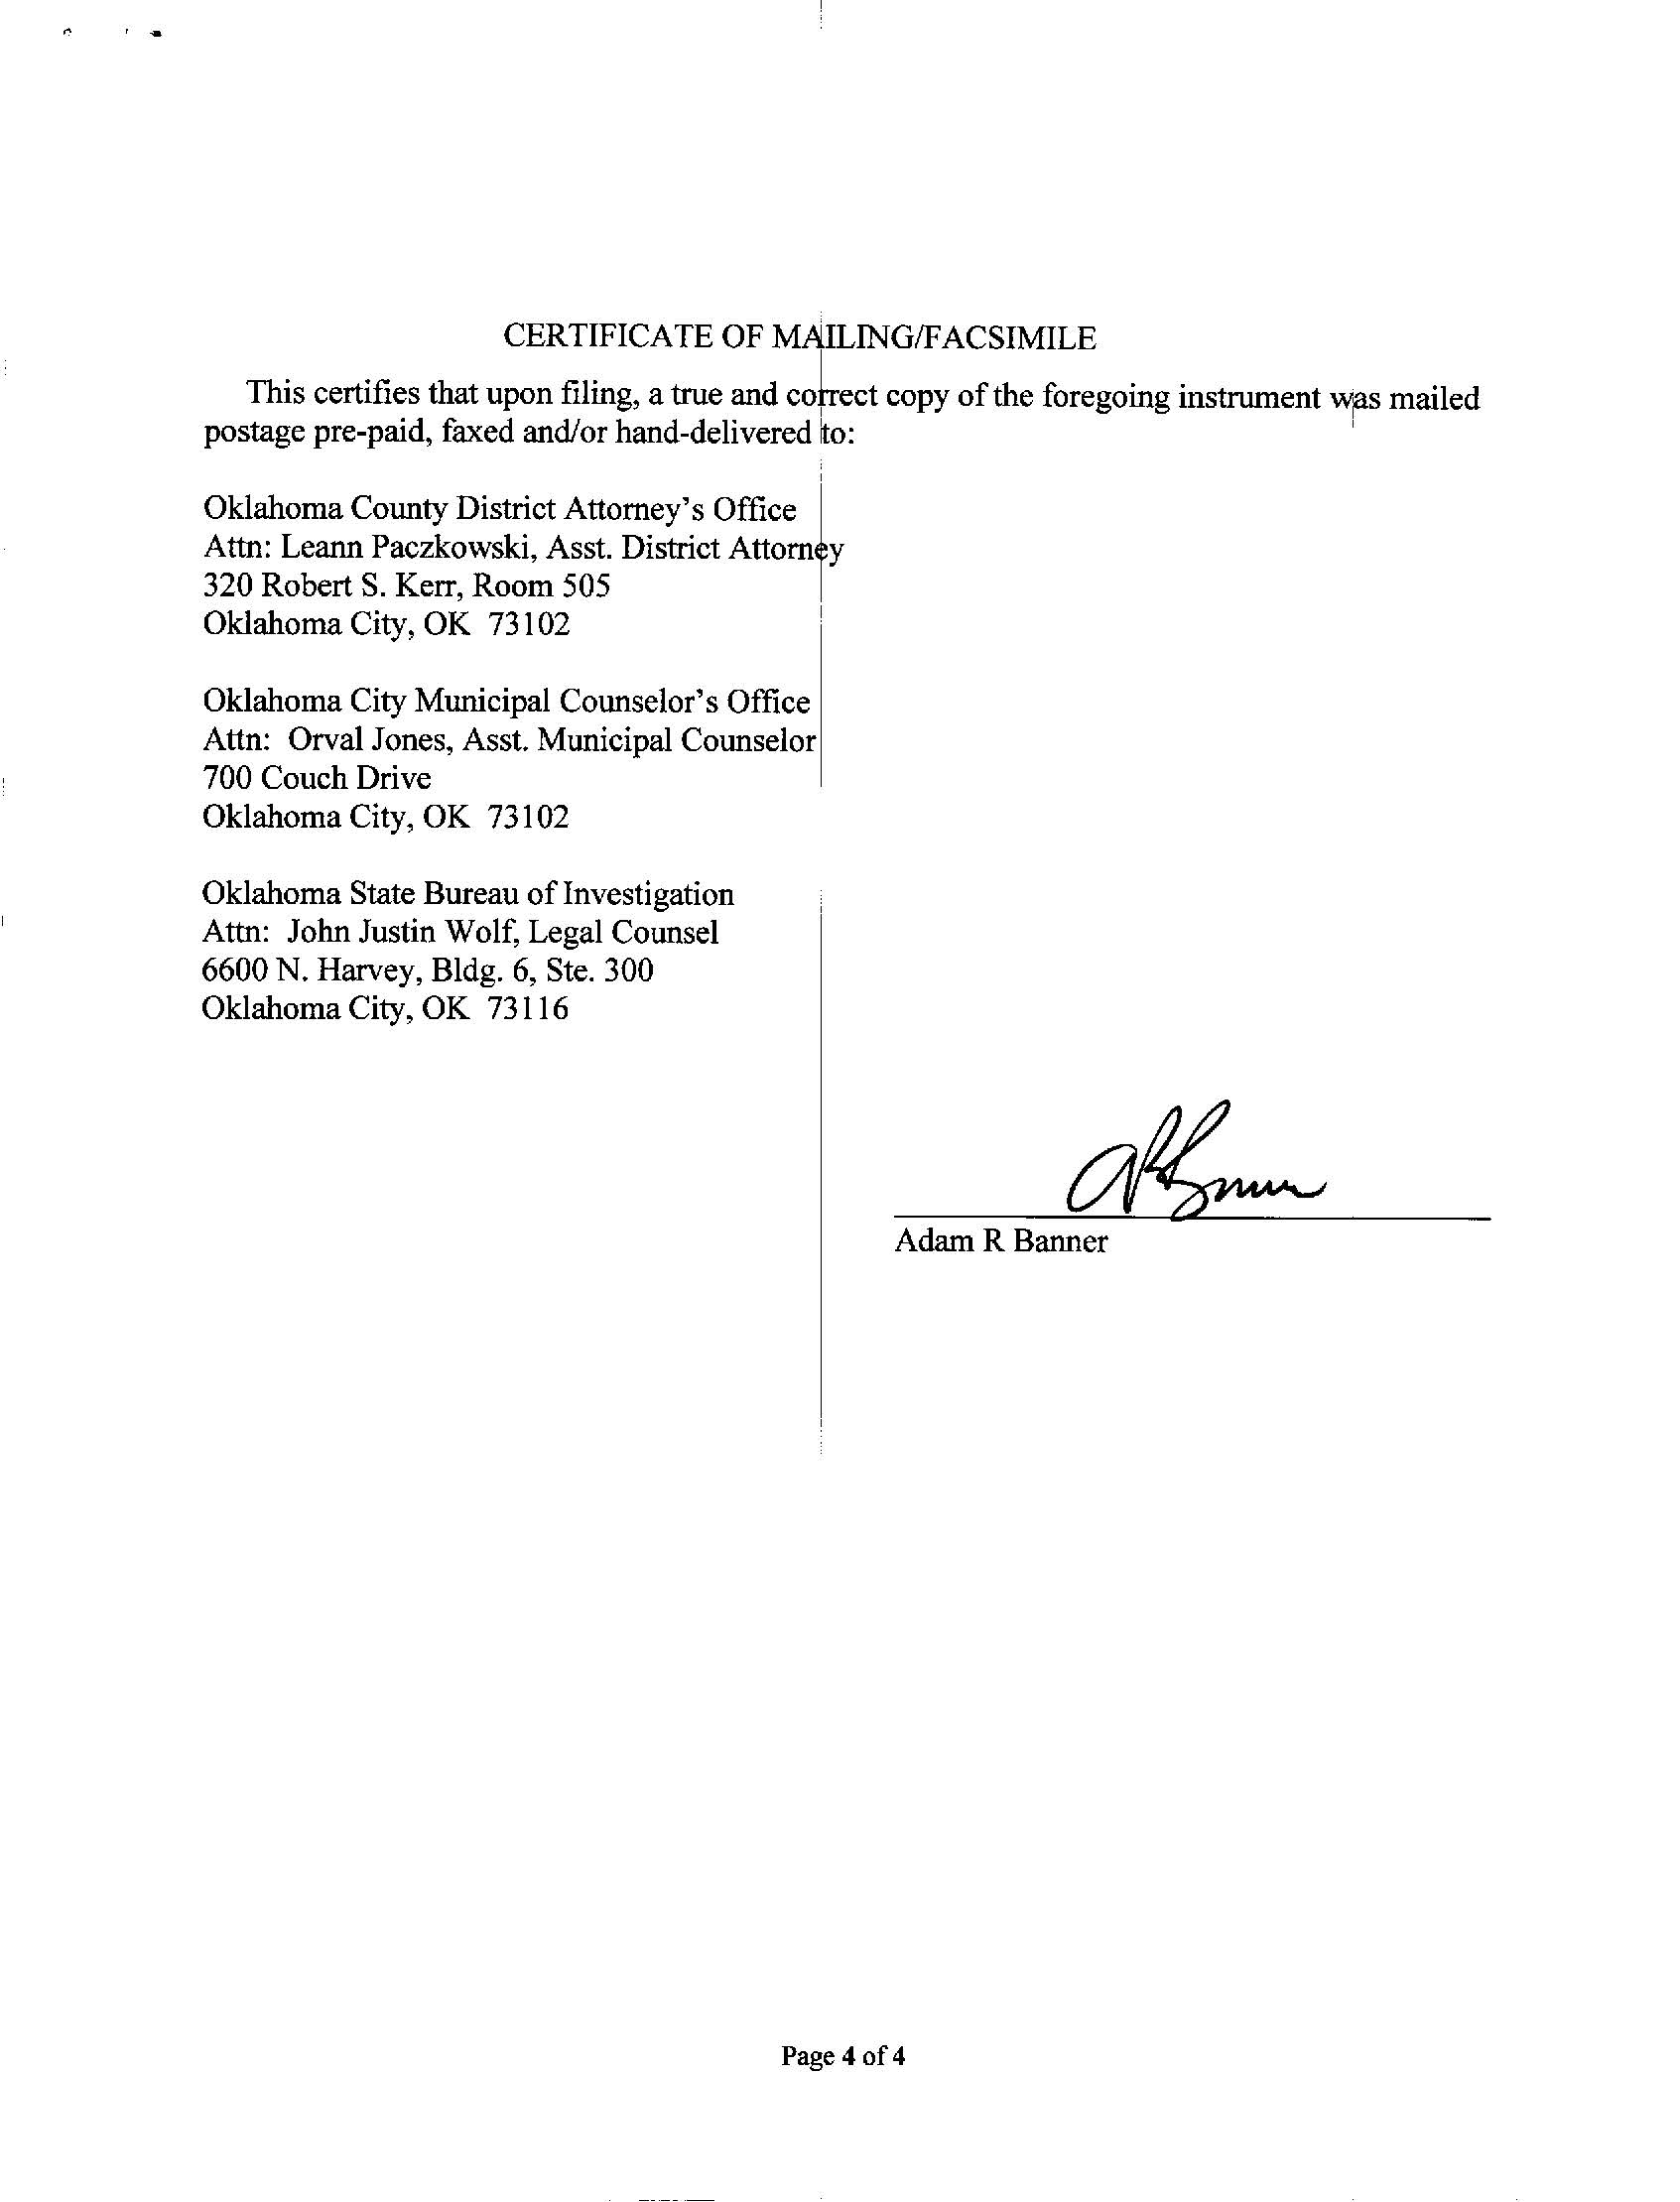 Hugh Spector Expungement Request_Page_4.jpg